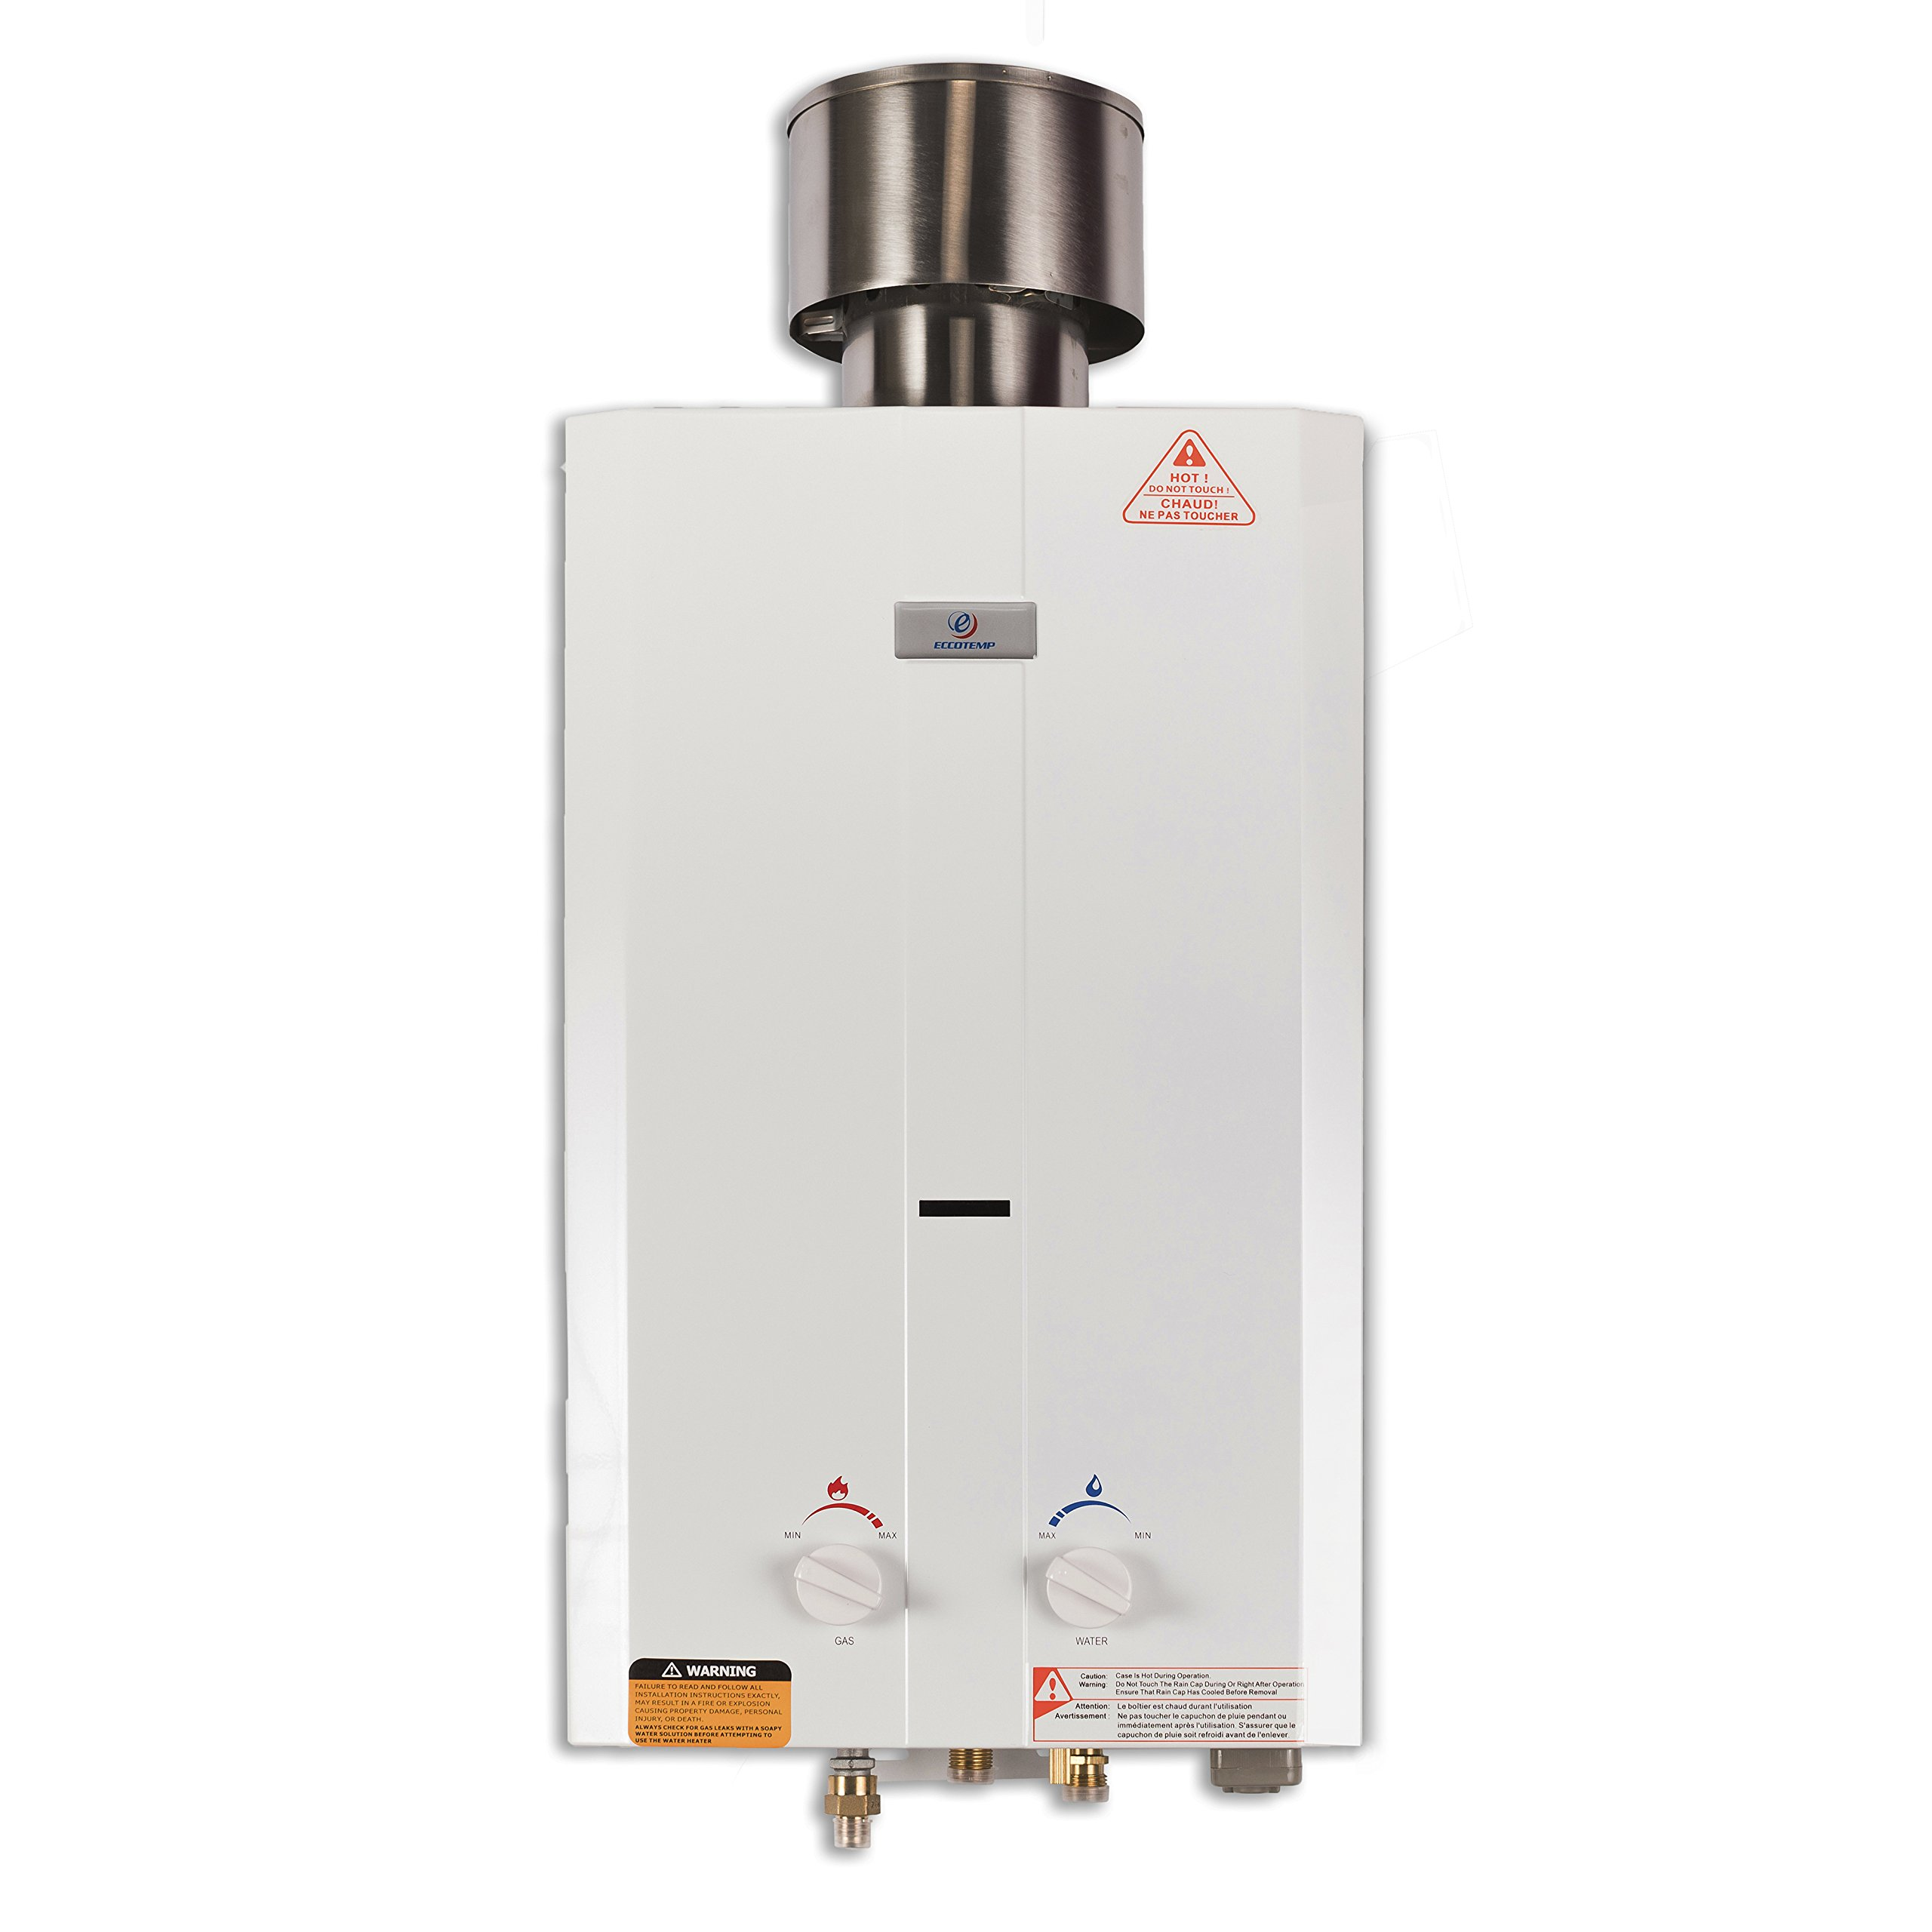 Eccotemp L10 Portable Outdoor Tankless Water Heater